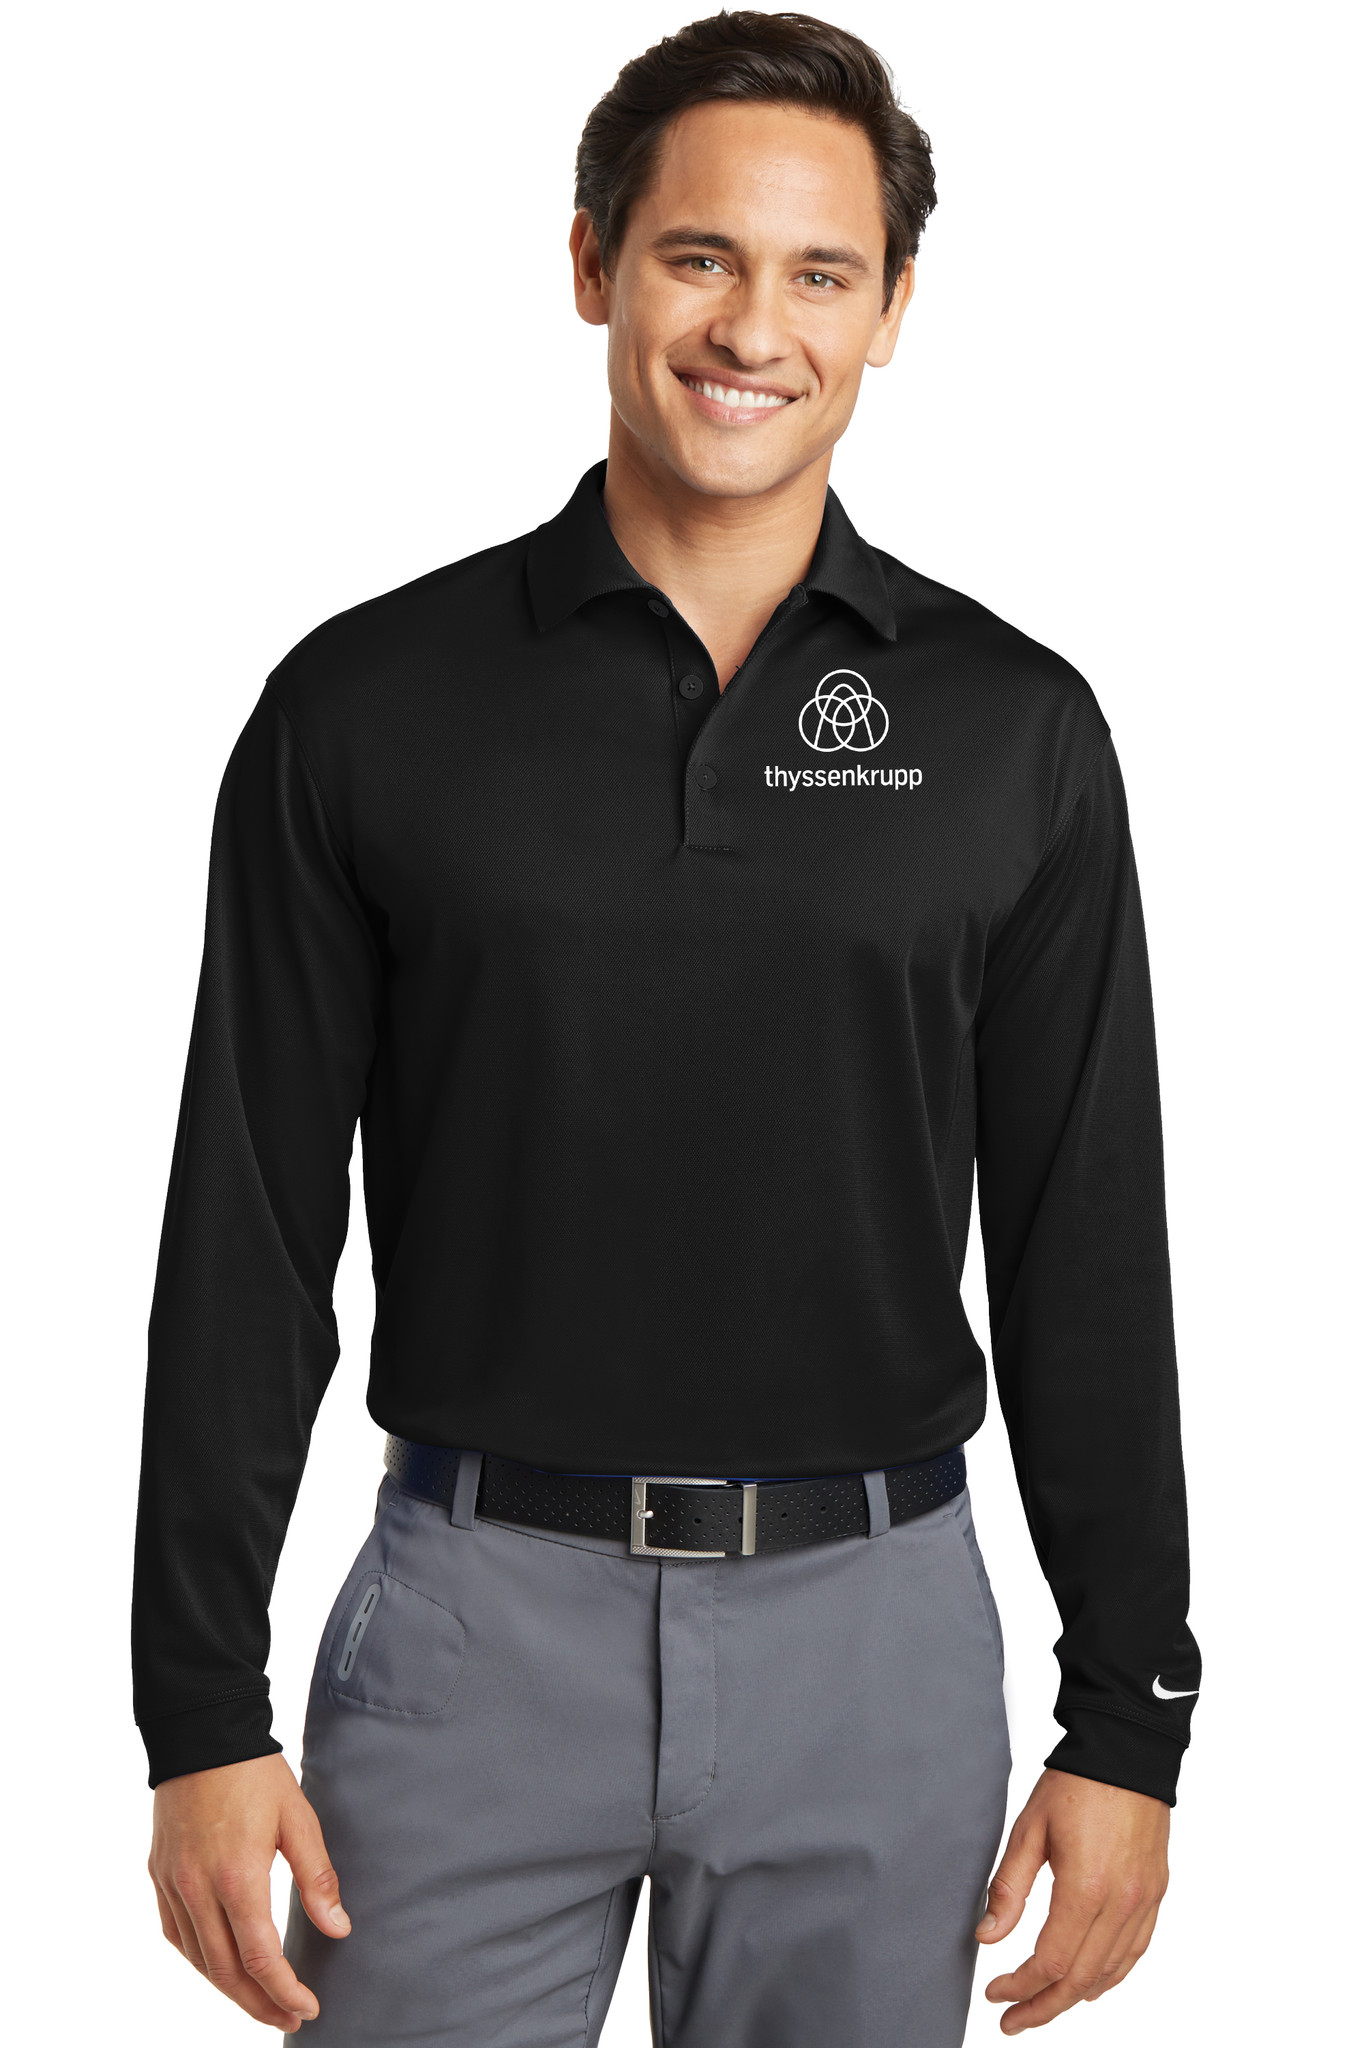 a045a4e1755 Tall Long Sleeve Golf Shirts – EDGE Engineering and Consulting Limited